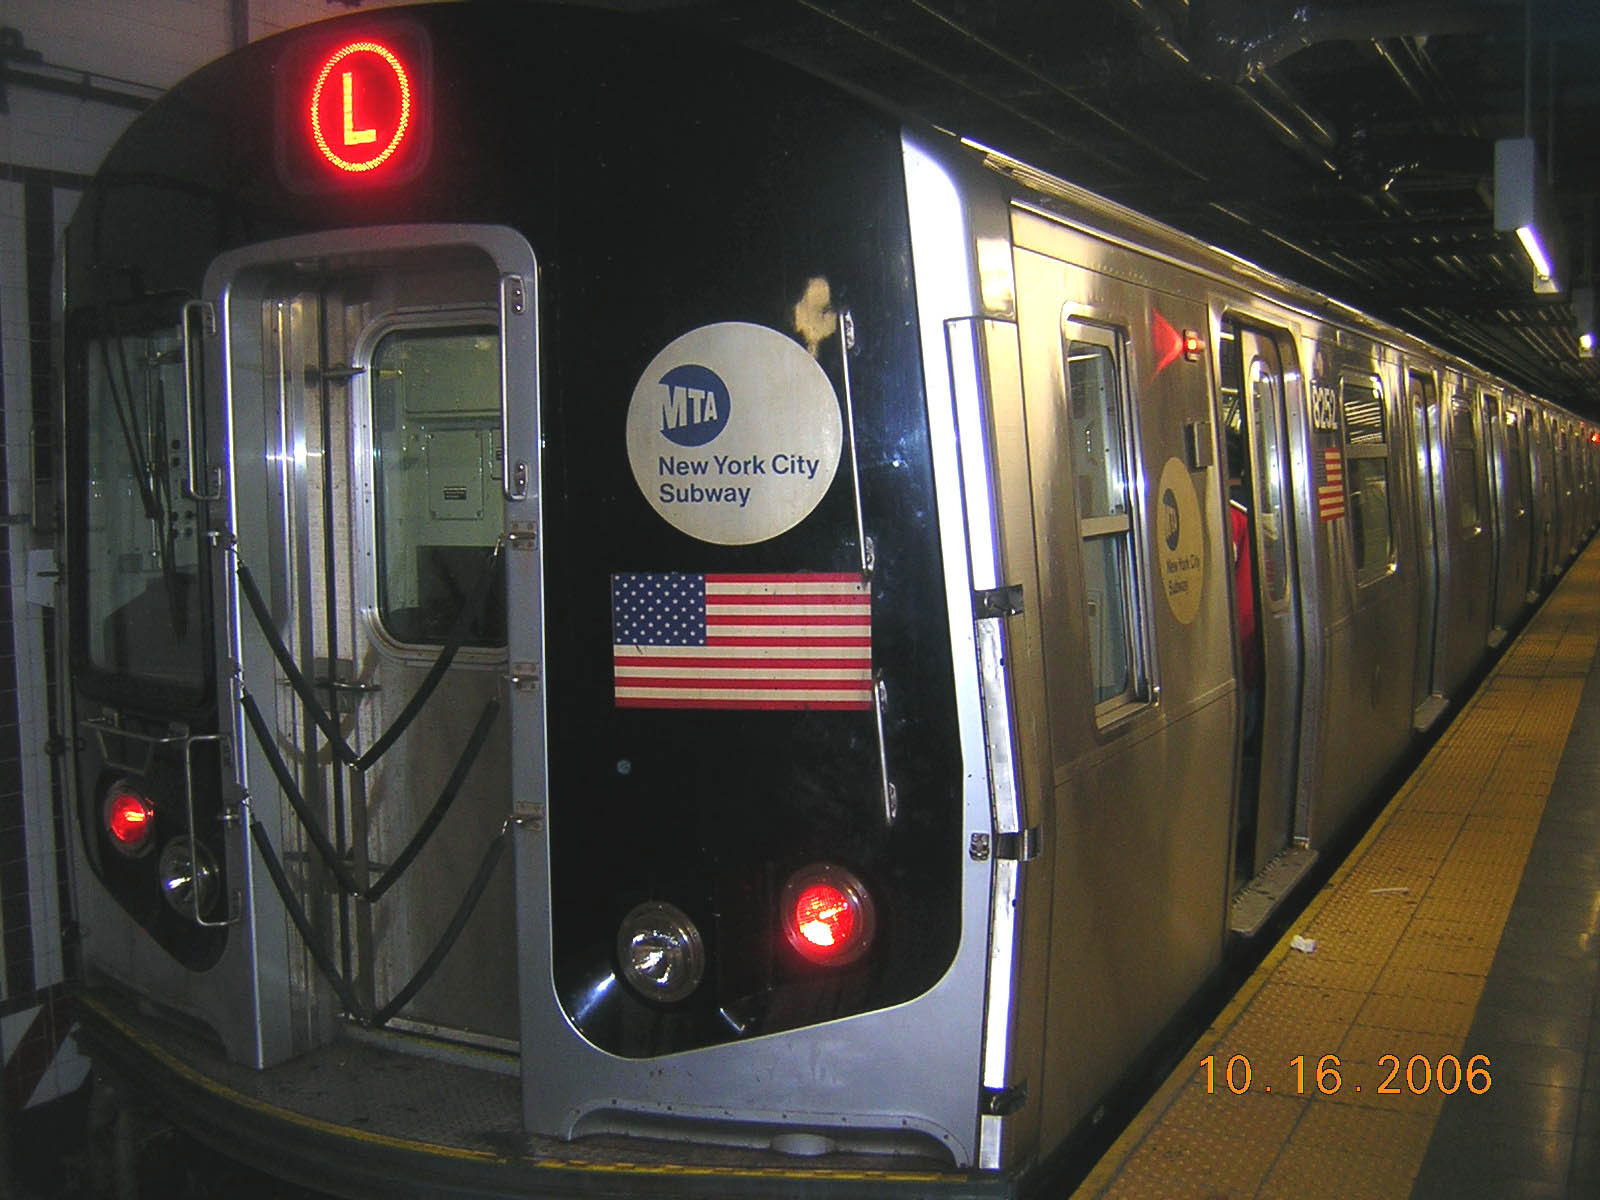 (223k, 1600x1200)<br><b>Country:</b> United States<br><b>City:</b> New York<br><b>System:</b> New York City Transit<br><b>Line:</b> BMT Canarsie Line<br><b>Location:</b> 8th Avenue <br><b>Route:</b> L<br><b>Car:</b> R-143 (Kawasaki, 2001-2002) 8252 <br><b>Photo by:</b> Robert Mencher<br><b>Date:</b> 10/16/2006<br><b>Viewed (this week/total):</b> 2 / 1572